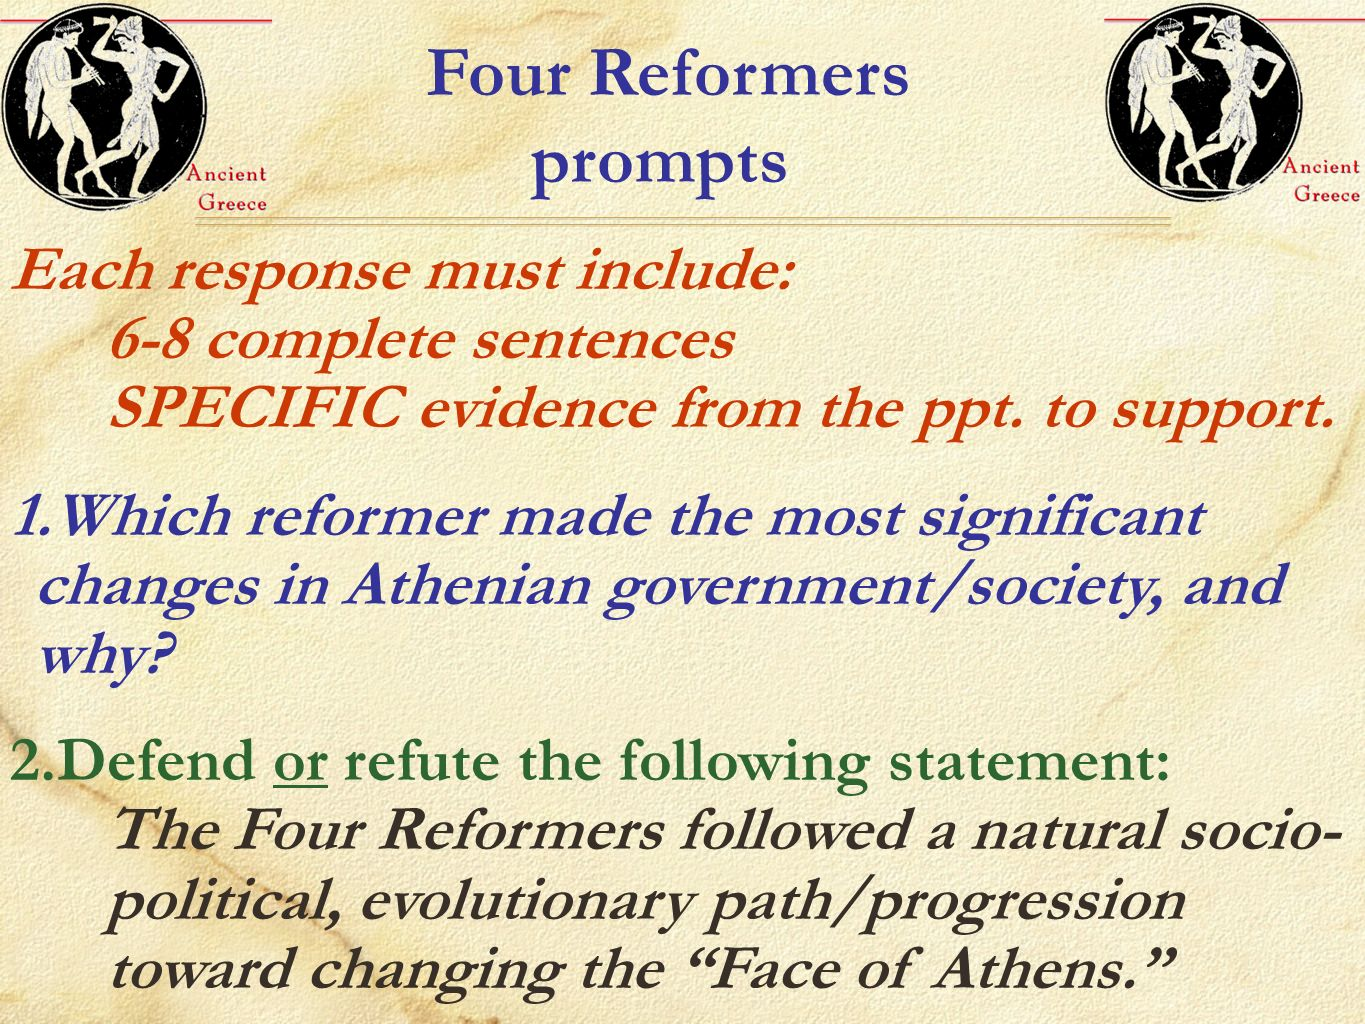 Four Reformers prompts